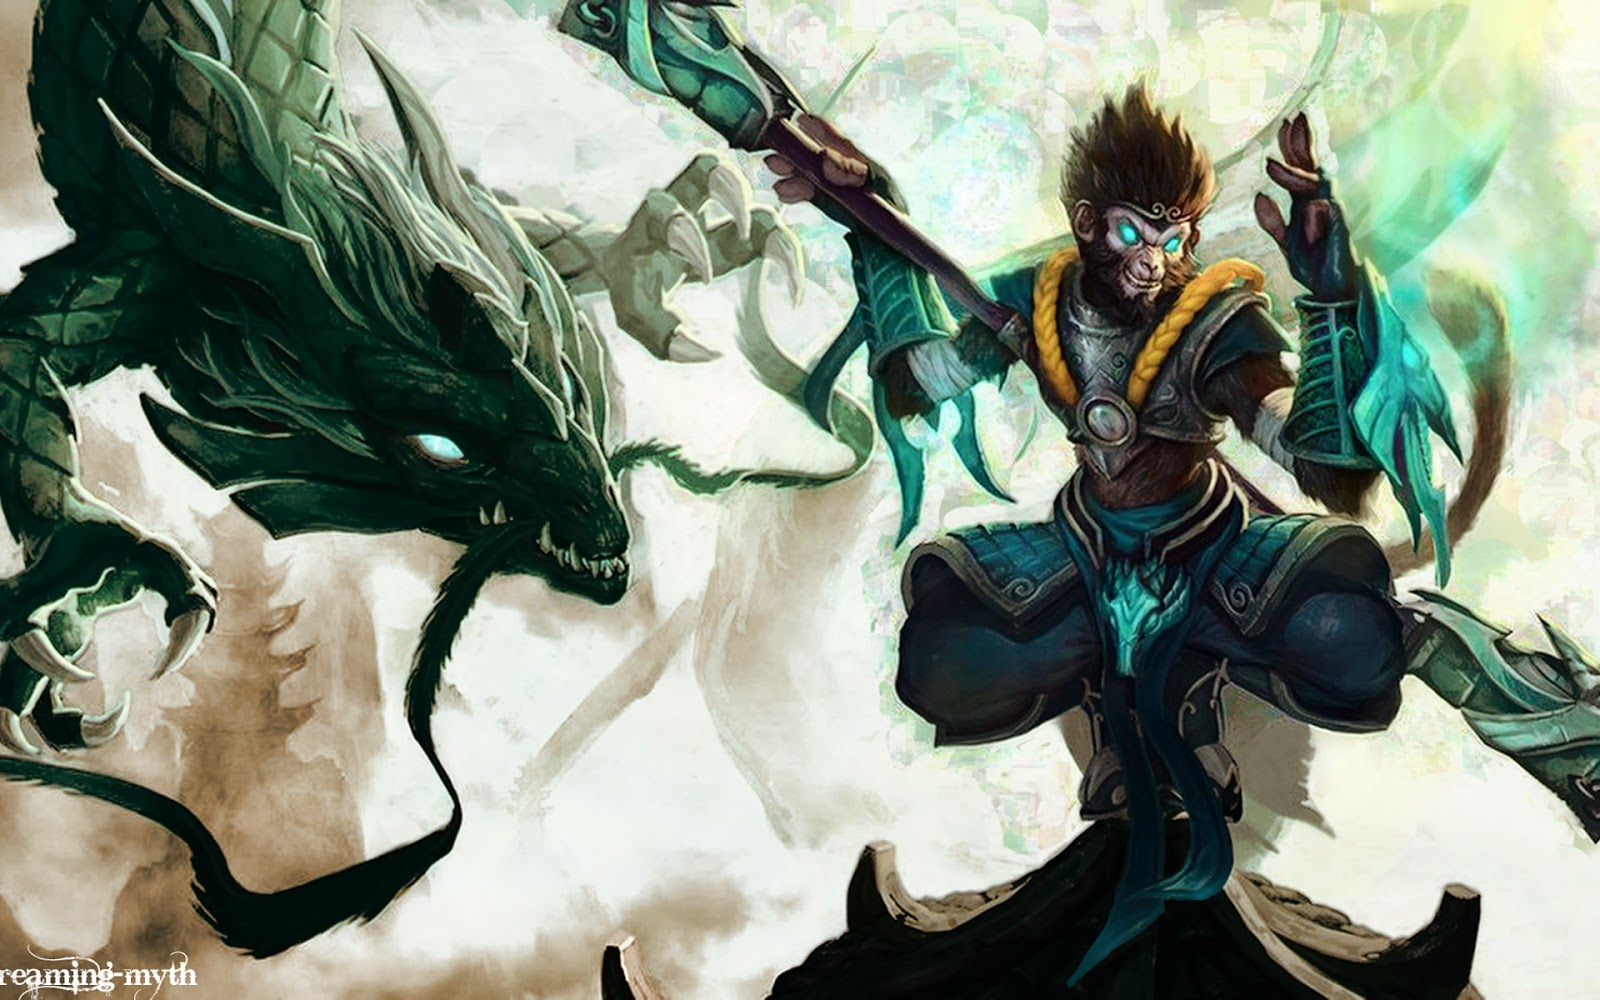 Wukong Desktop Backgrounds Wukong LOL Champion Wallpapers 1600x1000